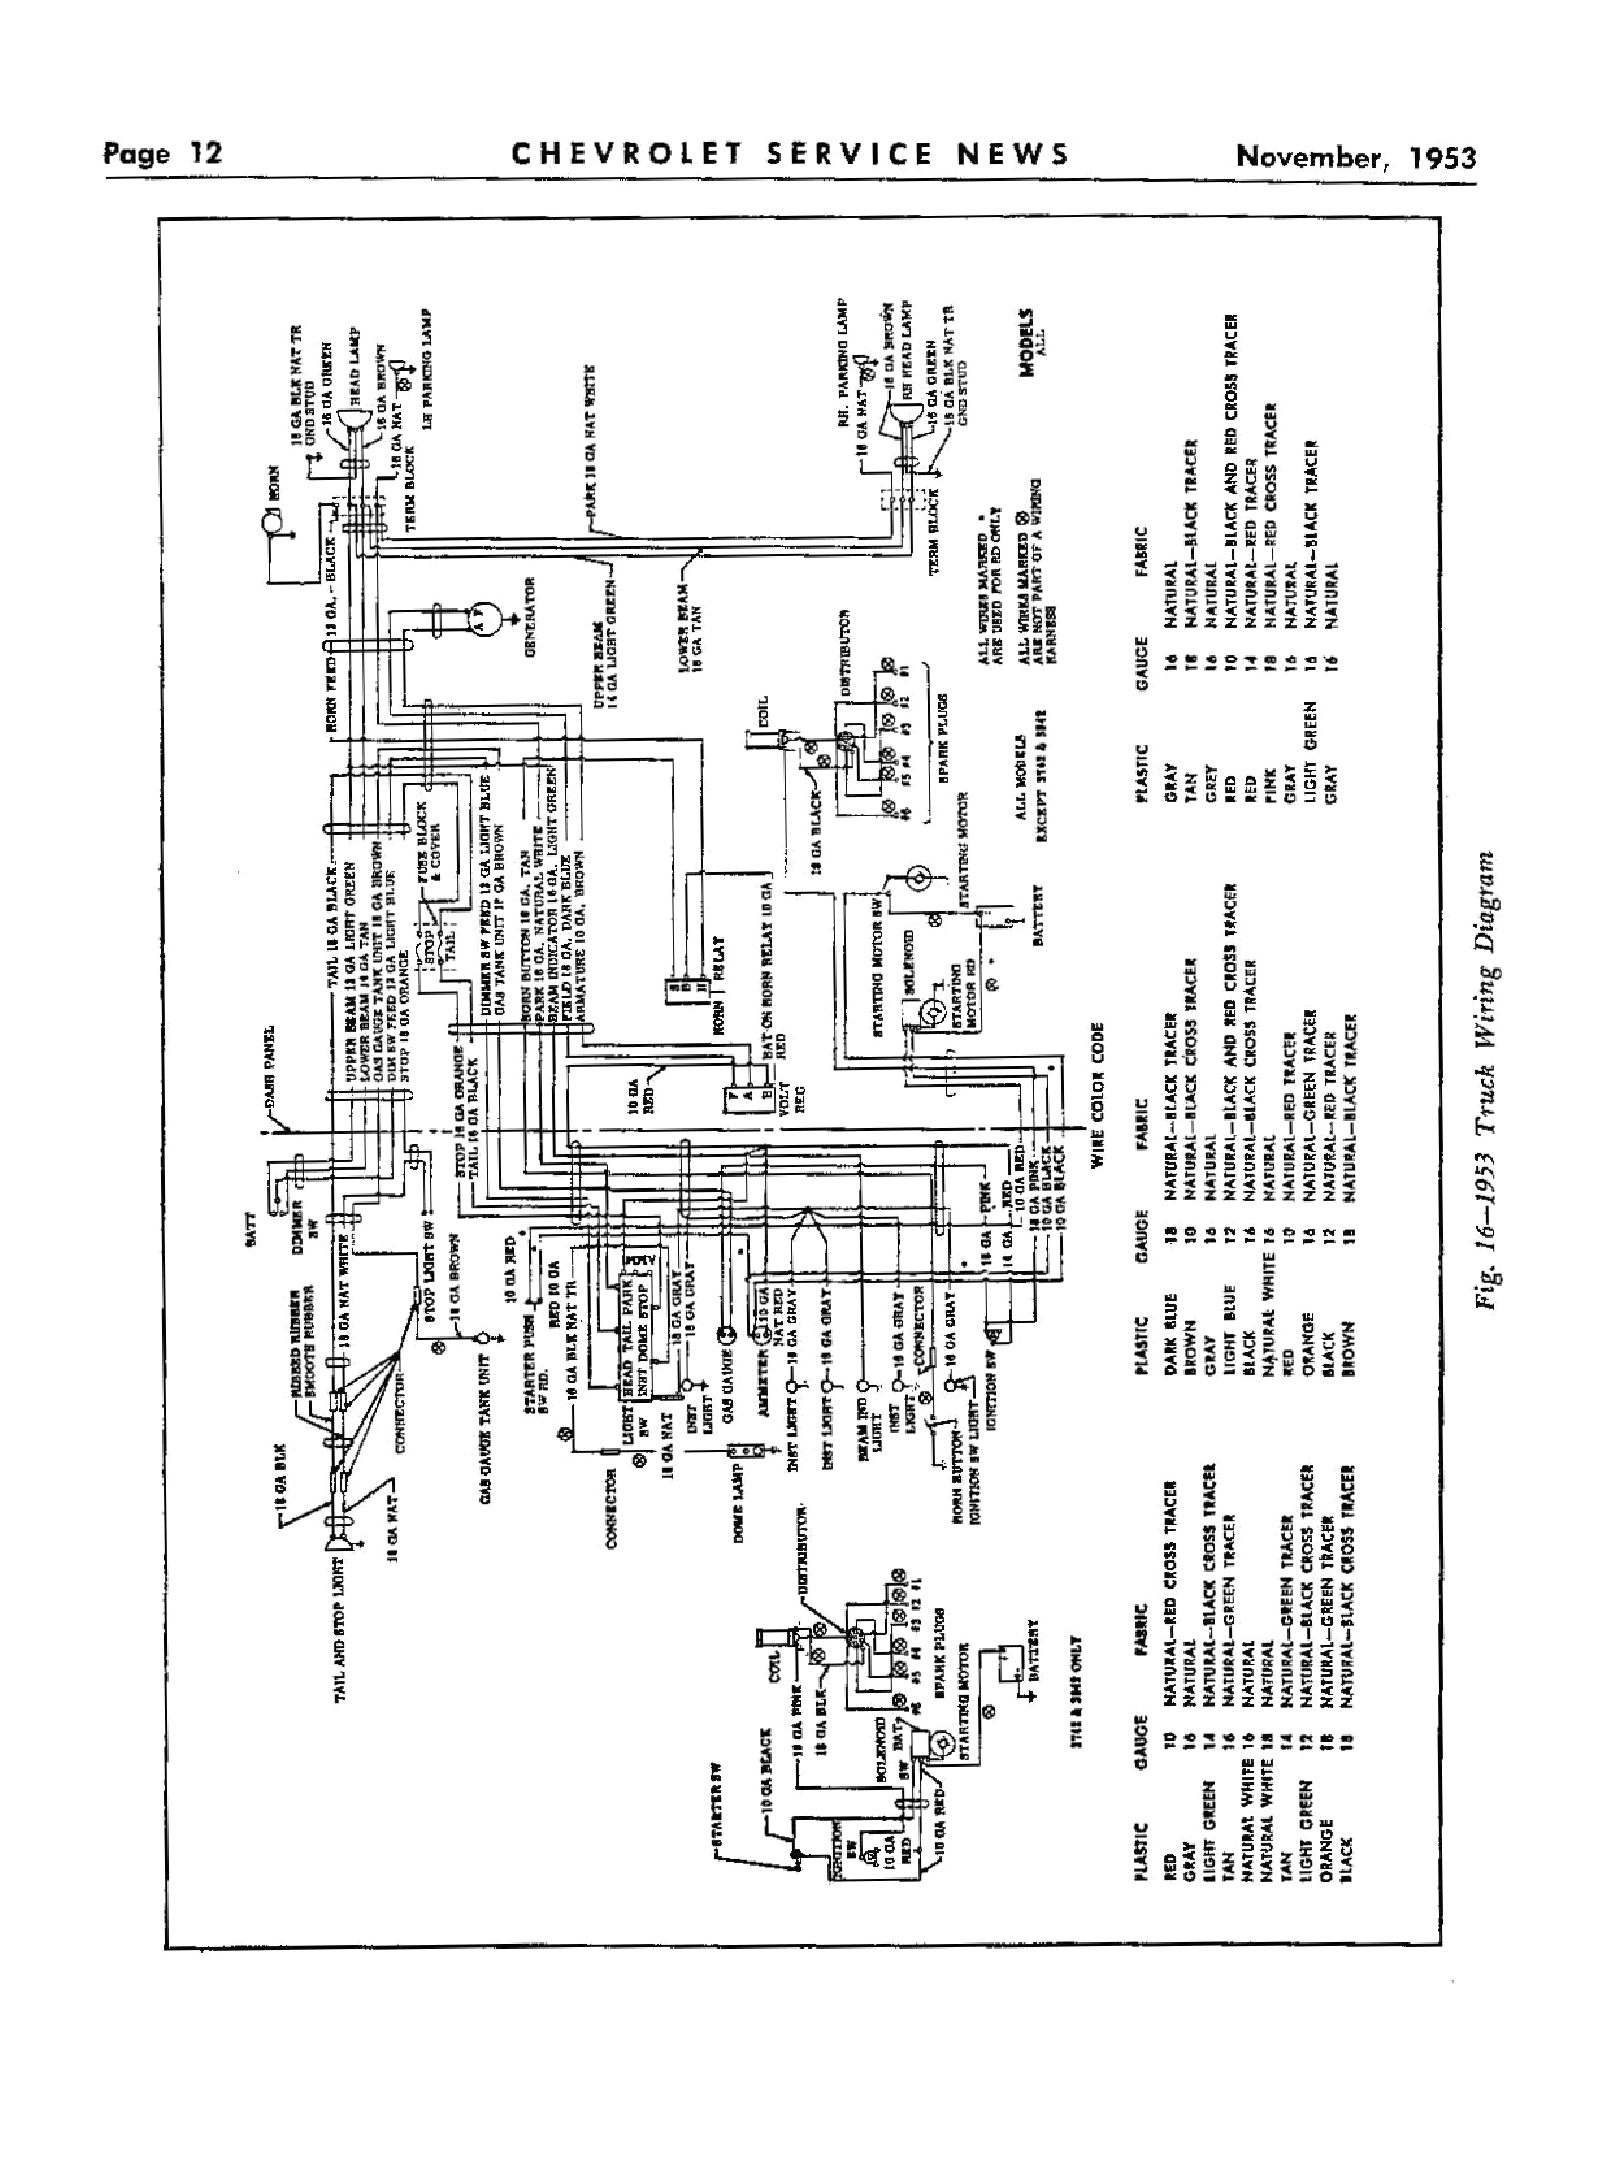 Chevy Silverado Starter Wiring Diagram on ford f-250 starter wiring diagram, chevy silverado tail light wiring diagram, 79 trans am starter wiring diagram, 1980 camaro starter wiring diagram, chevy silverado fog light wiring diagram, chevy silverado reverse light wiring diagram, chevy silverado speaker wiring diagram,